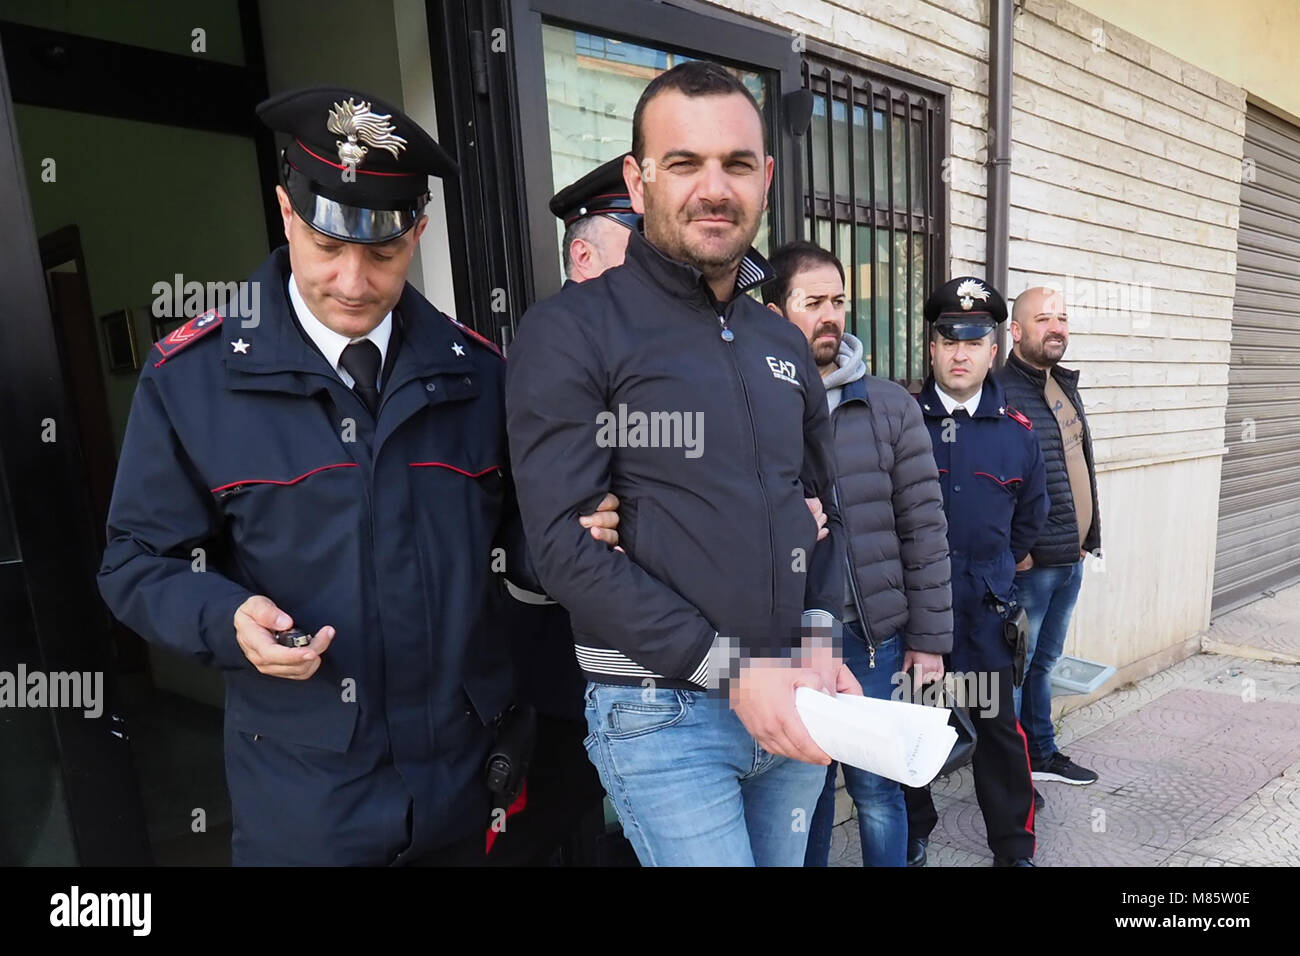 Corigliano Calabro, a vast operation of the carabinieri of the provincial command of Cosenza, led to the arrest Stock Photo